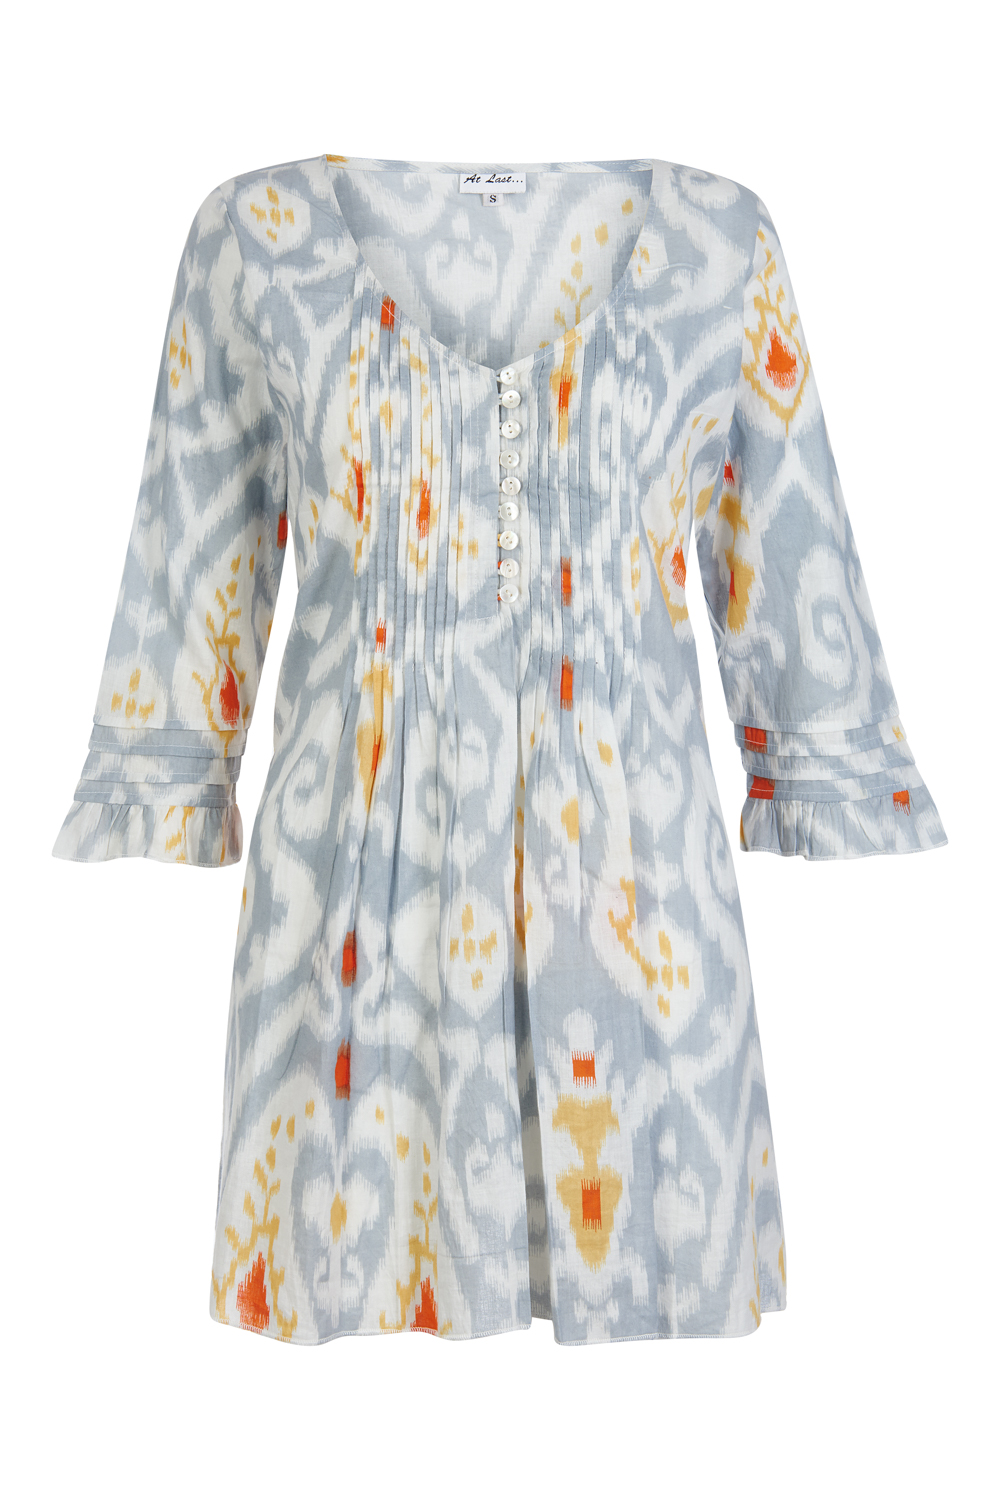 At Last Sophie No Frill - Grey / Orange Ikat